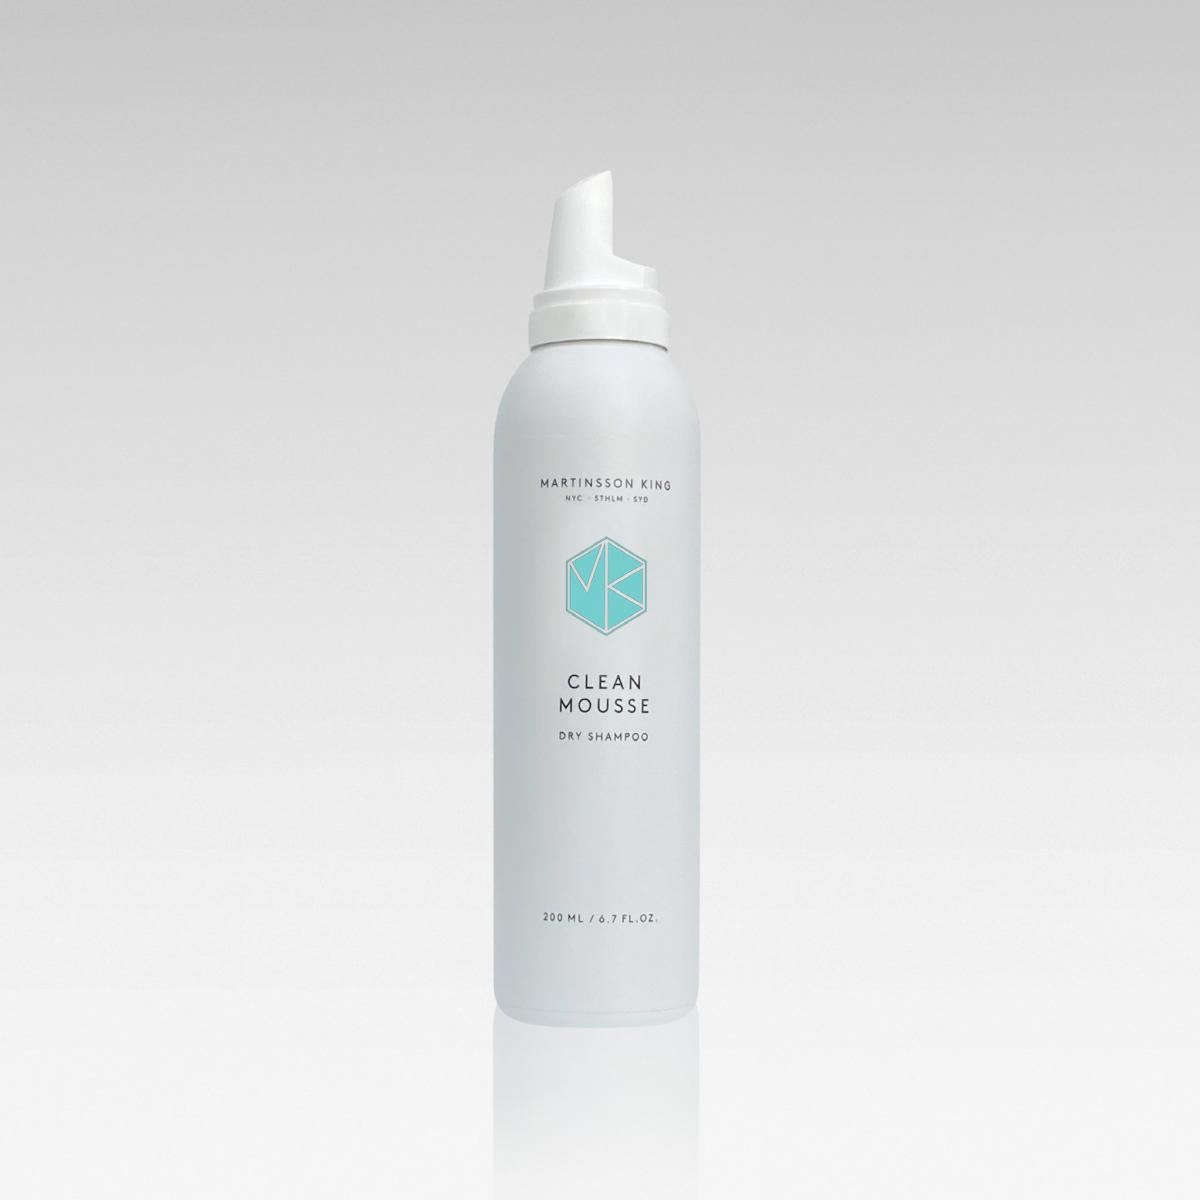 Martinsson King Clean Mousse DRY Shampoo, 200ml - Hairsale.se